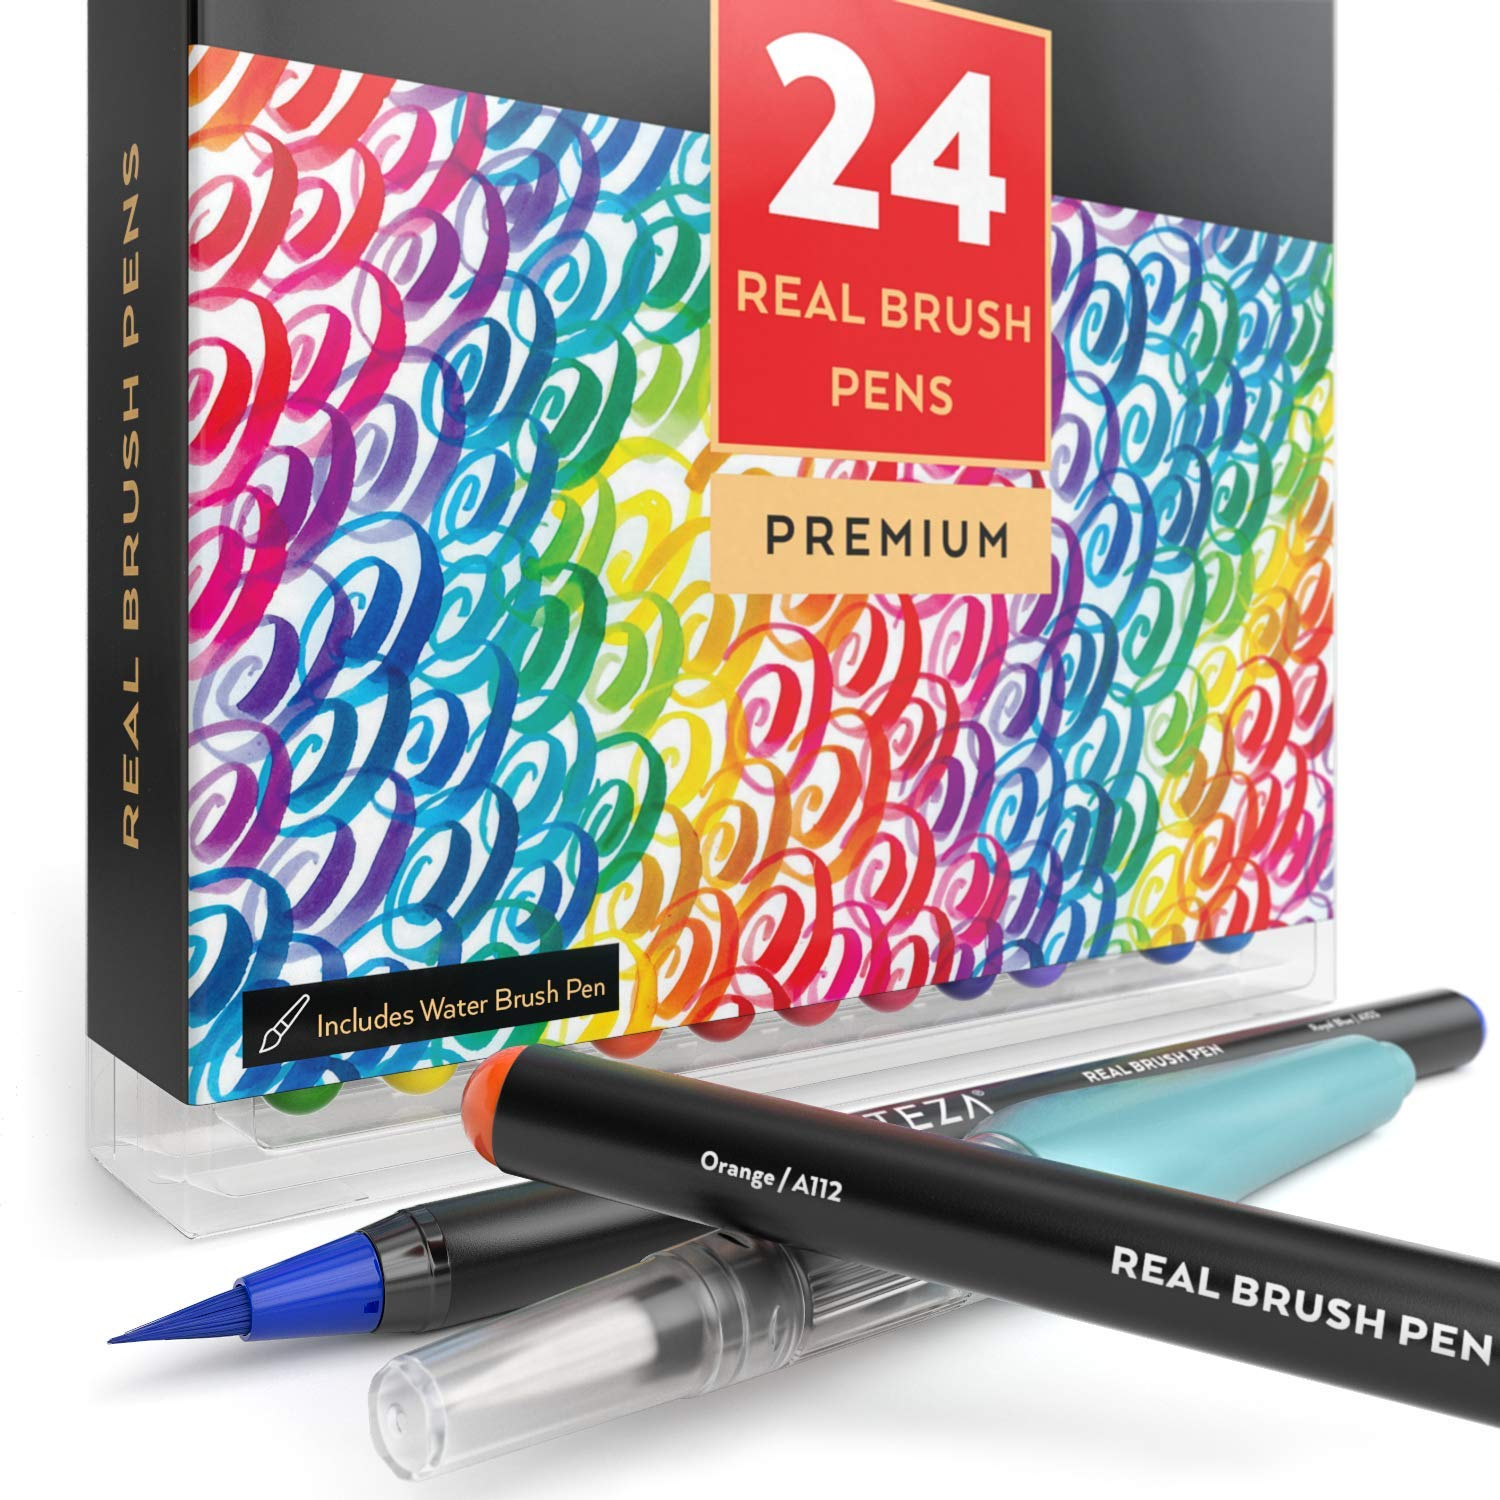 Arteza Real Brush Pens, 24 Colors for Watercolor Painting with Flexible Nylon Brush Tips, Paint Markers for Coloring, Calligraphy and Drawing with Water Brush for Artists and Beginner Painters by ARTEZA